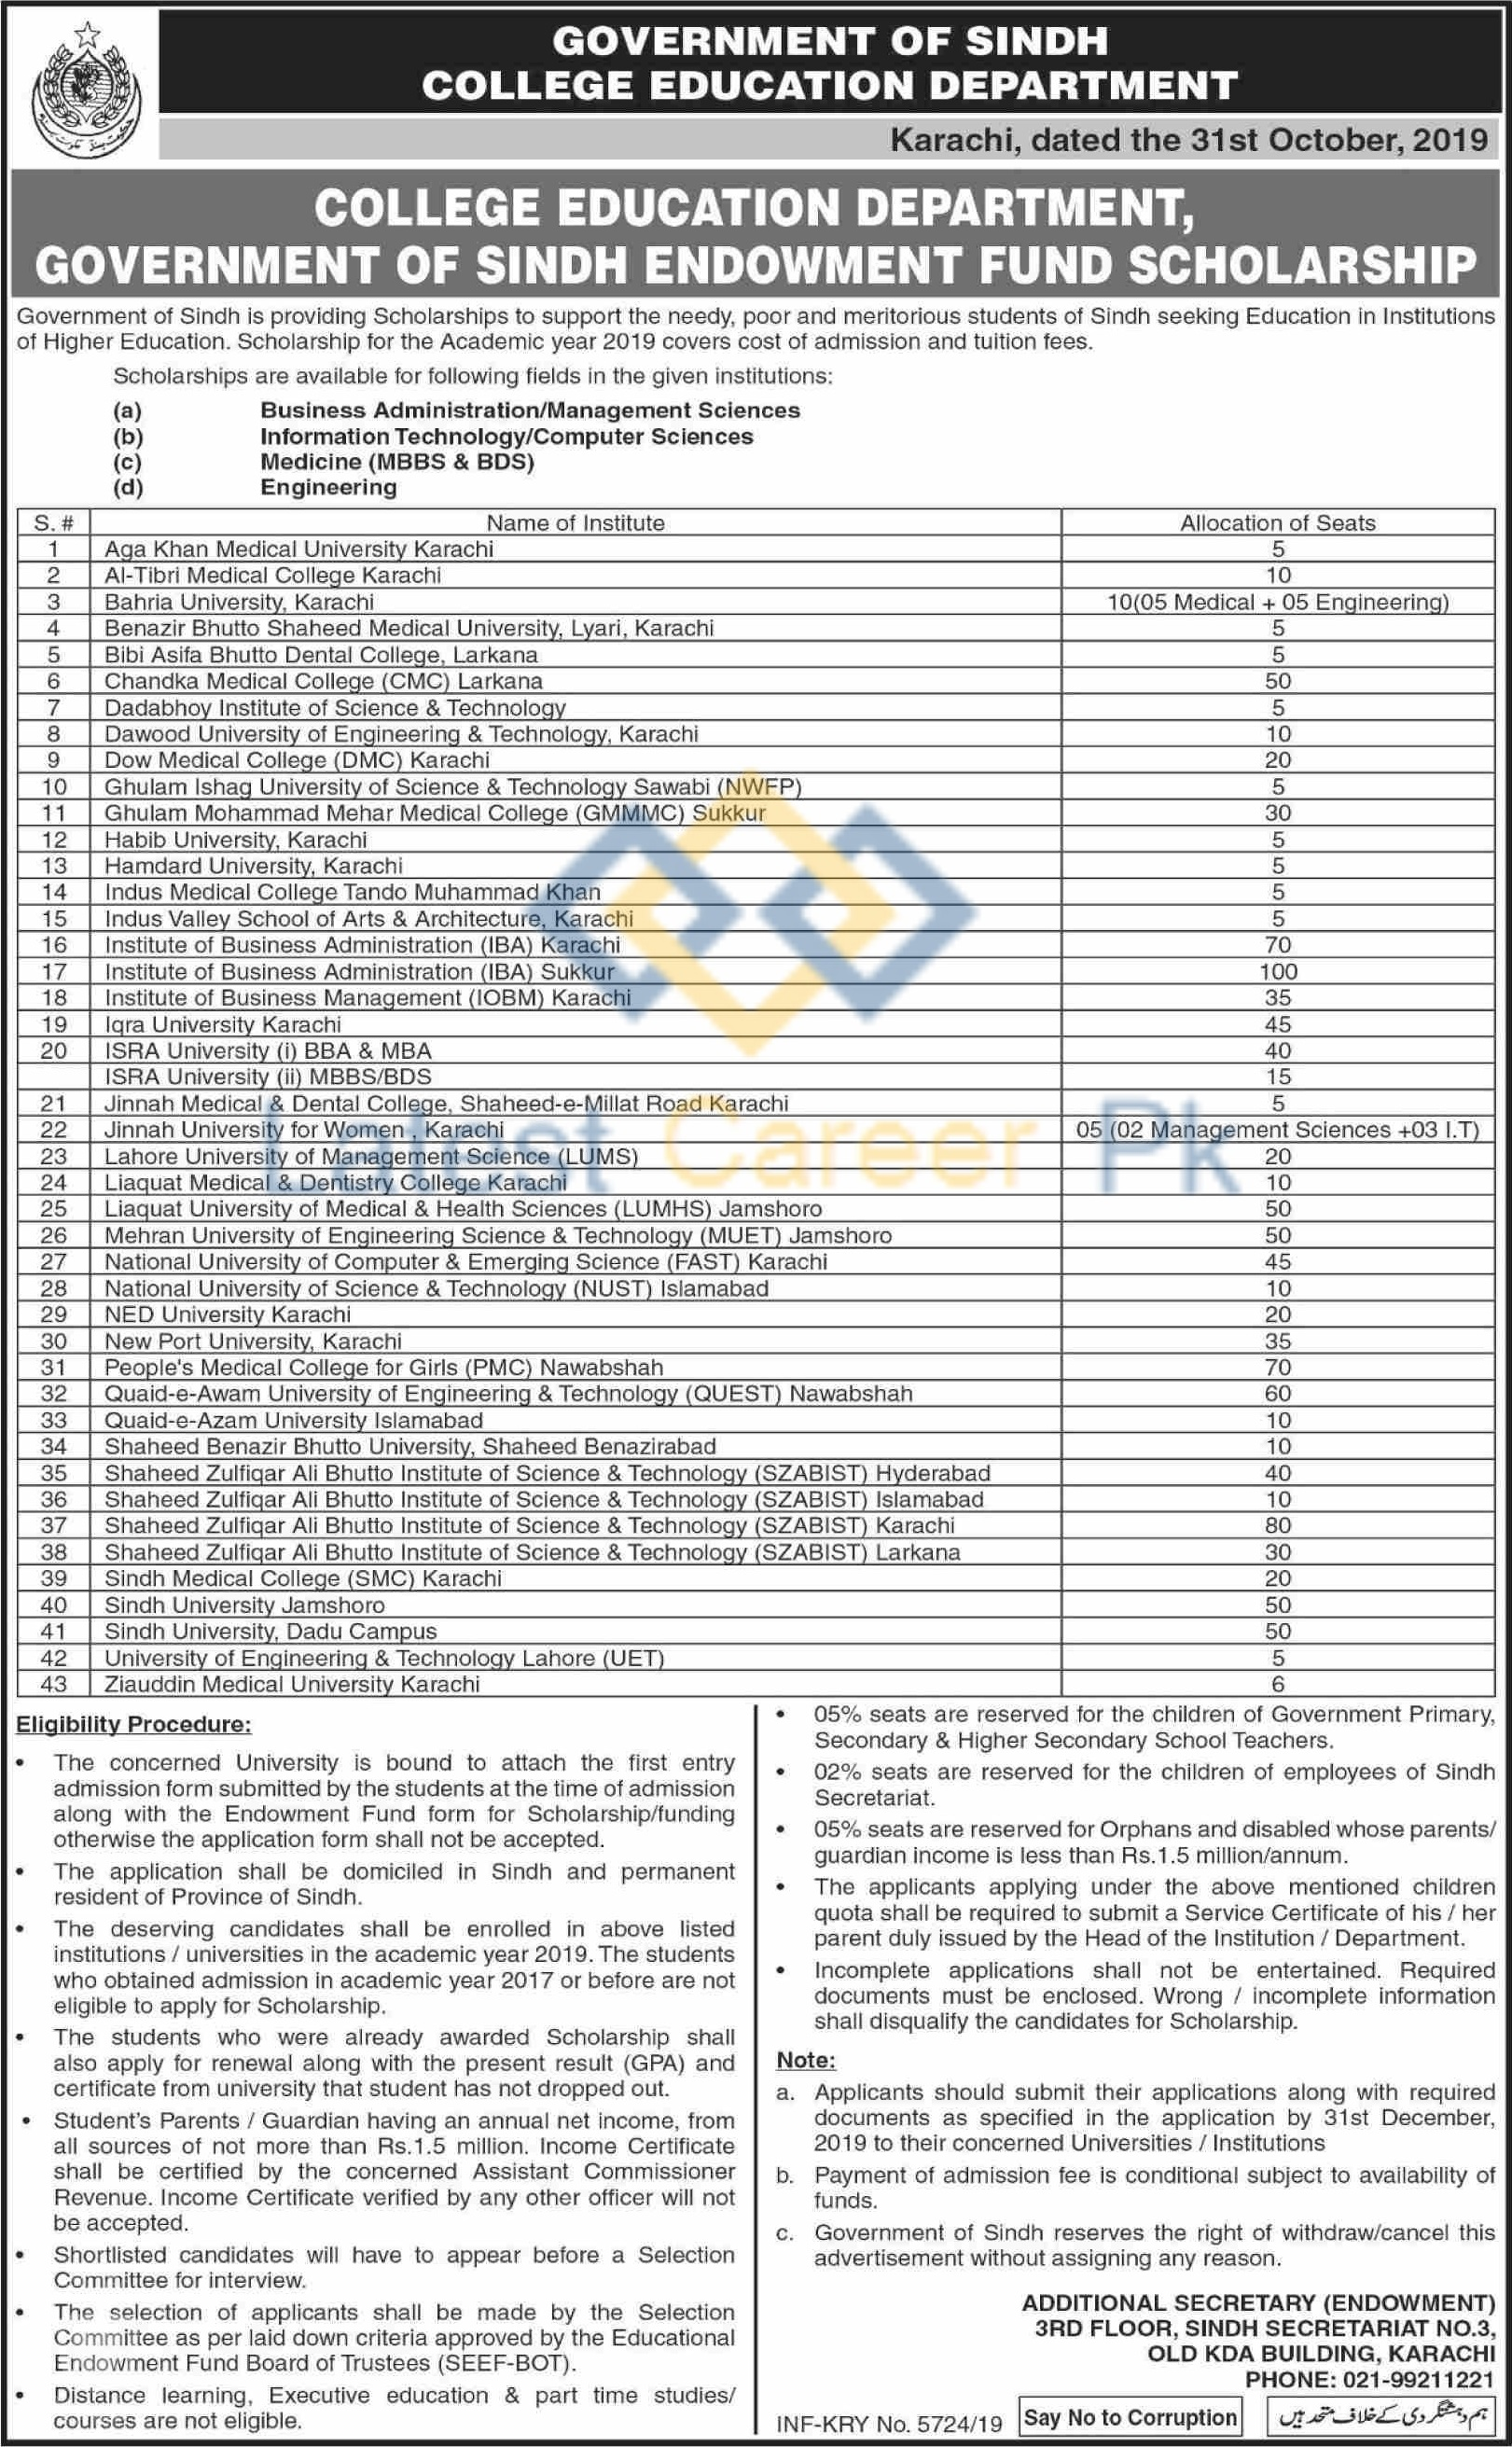 Government-of-Sindh-Endowment-Fund-Scholarships-2019